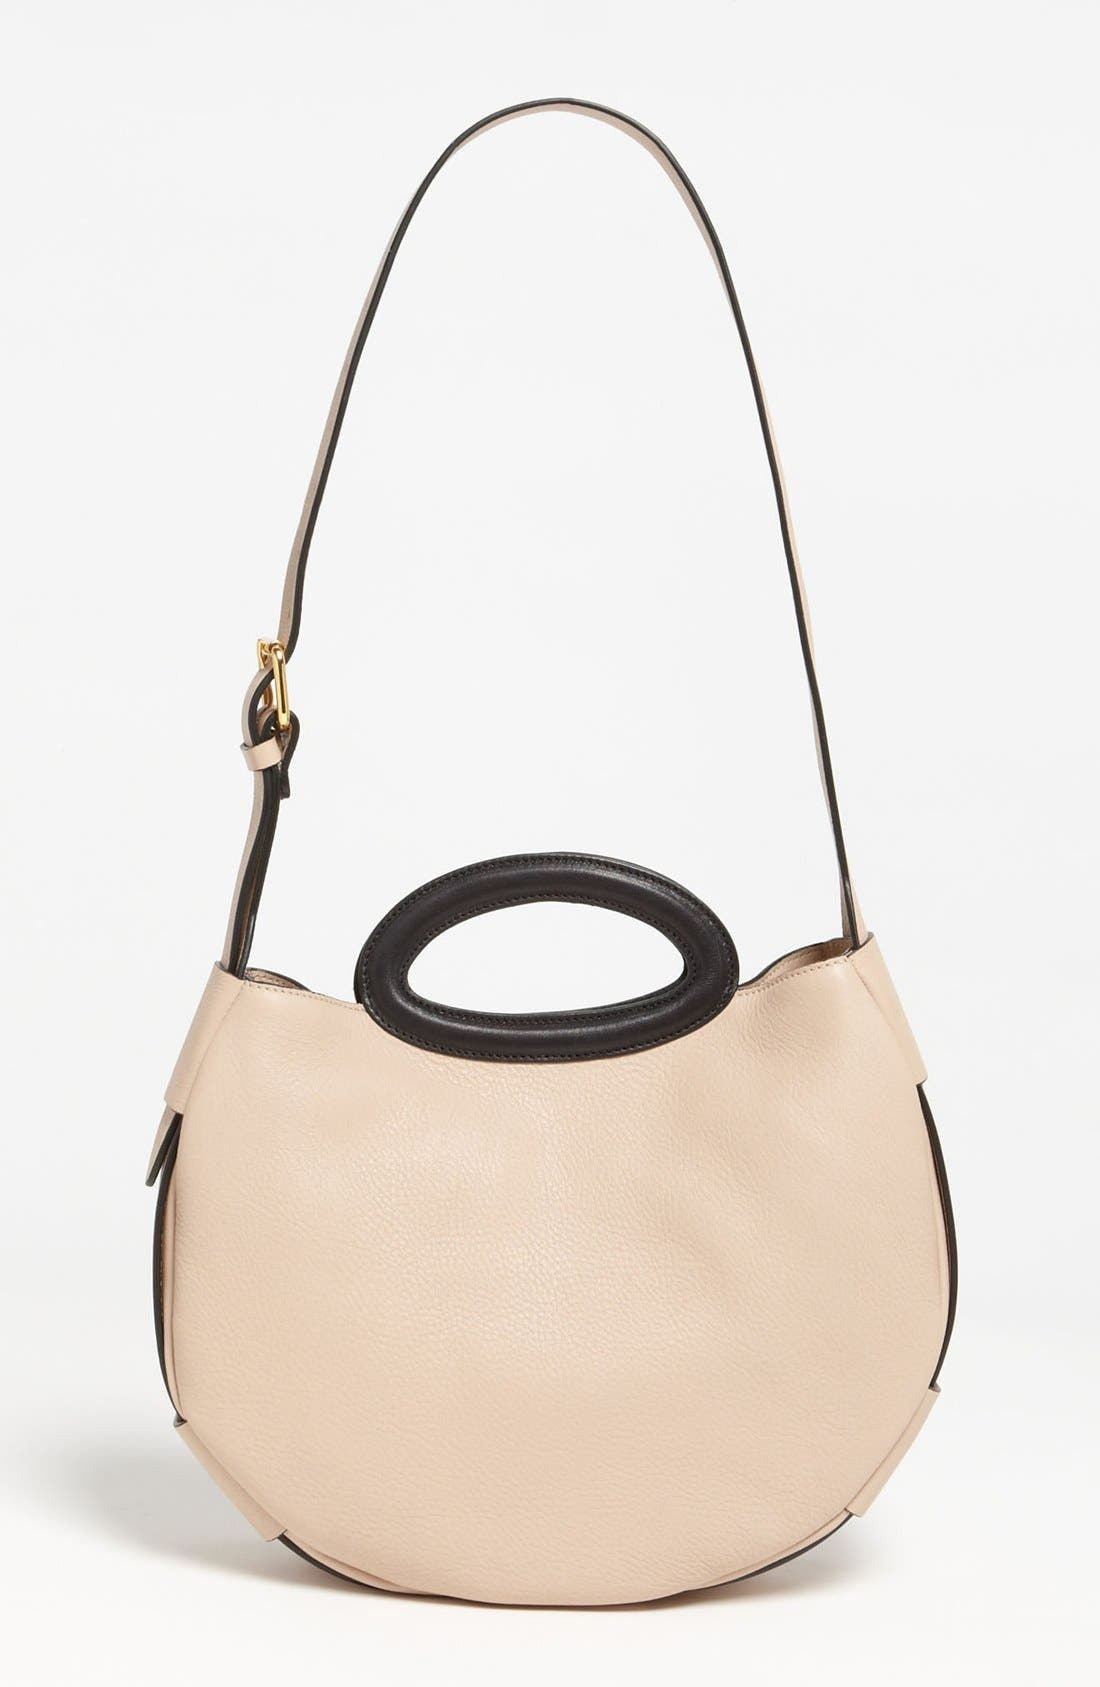 Alternate Image 1 Selected - Marni 'Balloon - Small' Shoulder Bag